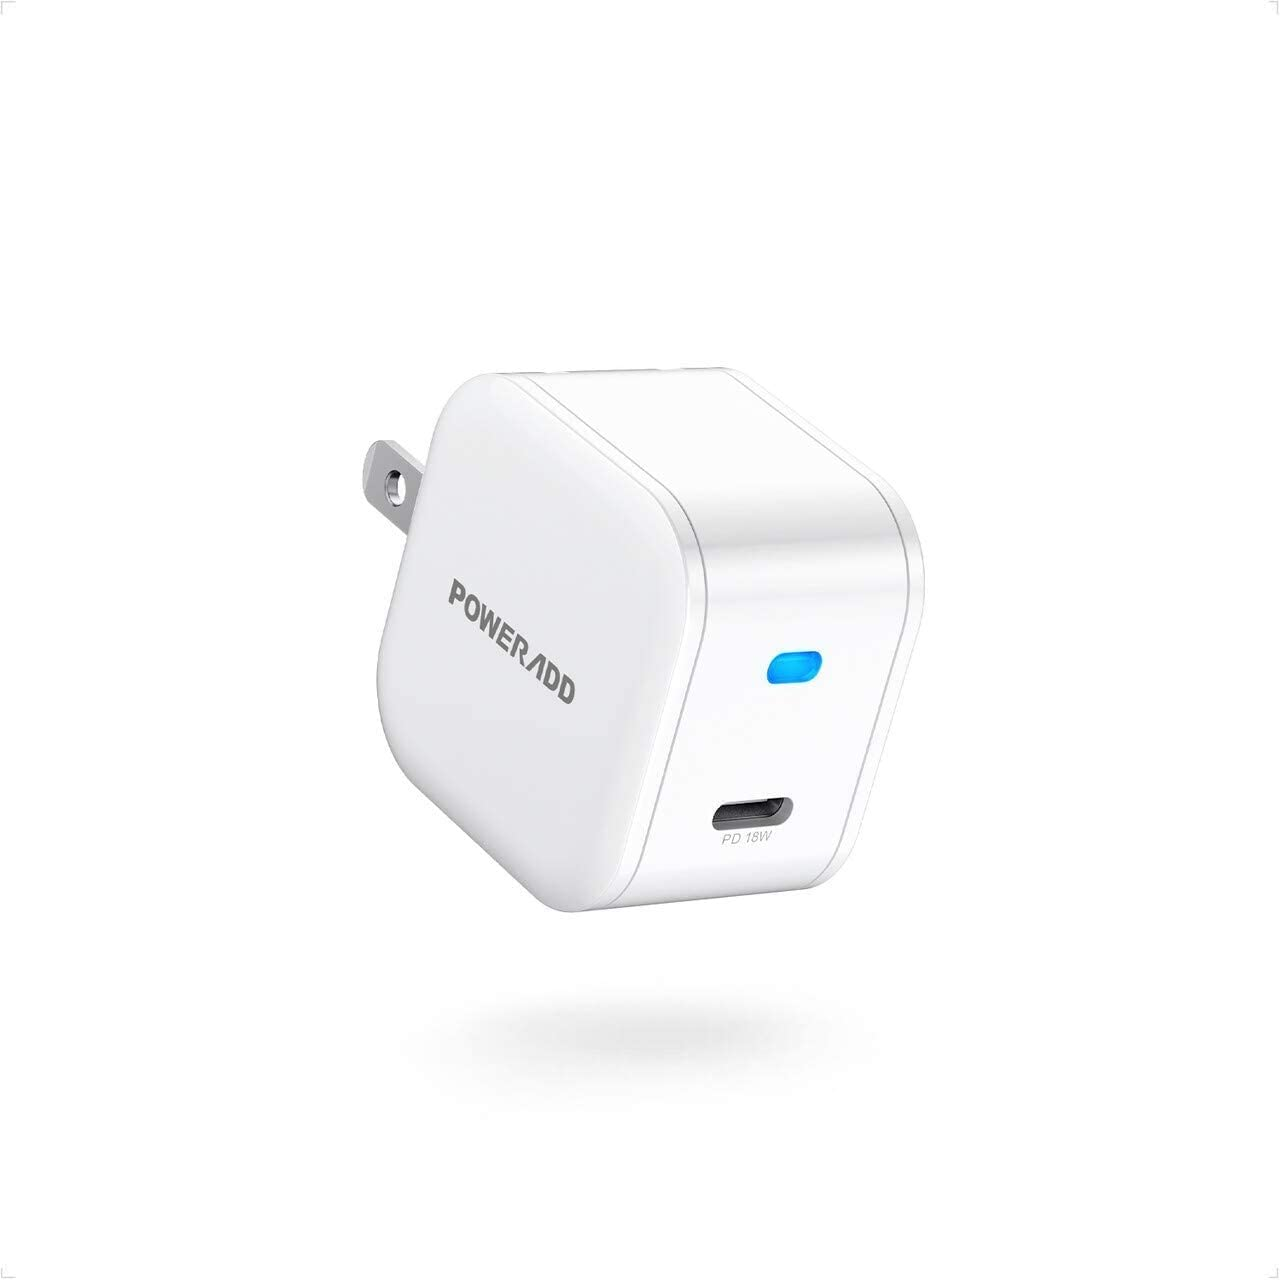 iPhone 12 Charger,POWERADD Power Delivery 18W Fast Wall Charger Power Adapter with Foldable Plug PD Compact Wall Charger Compatible with iPhone 12 11 Pro XR SE iPad AirPods, Pixel, Galaxy and More